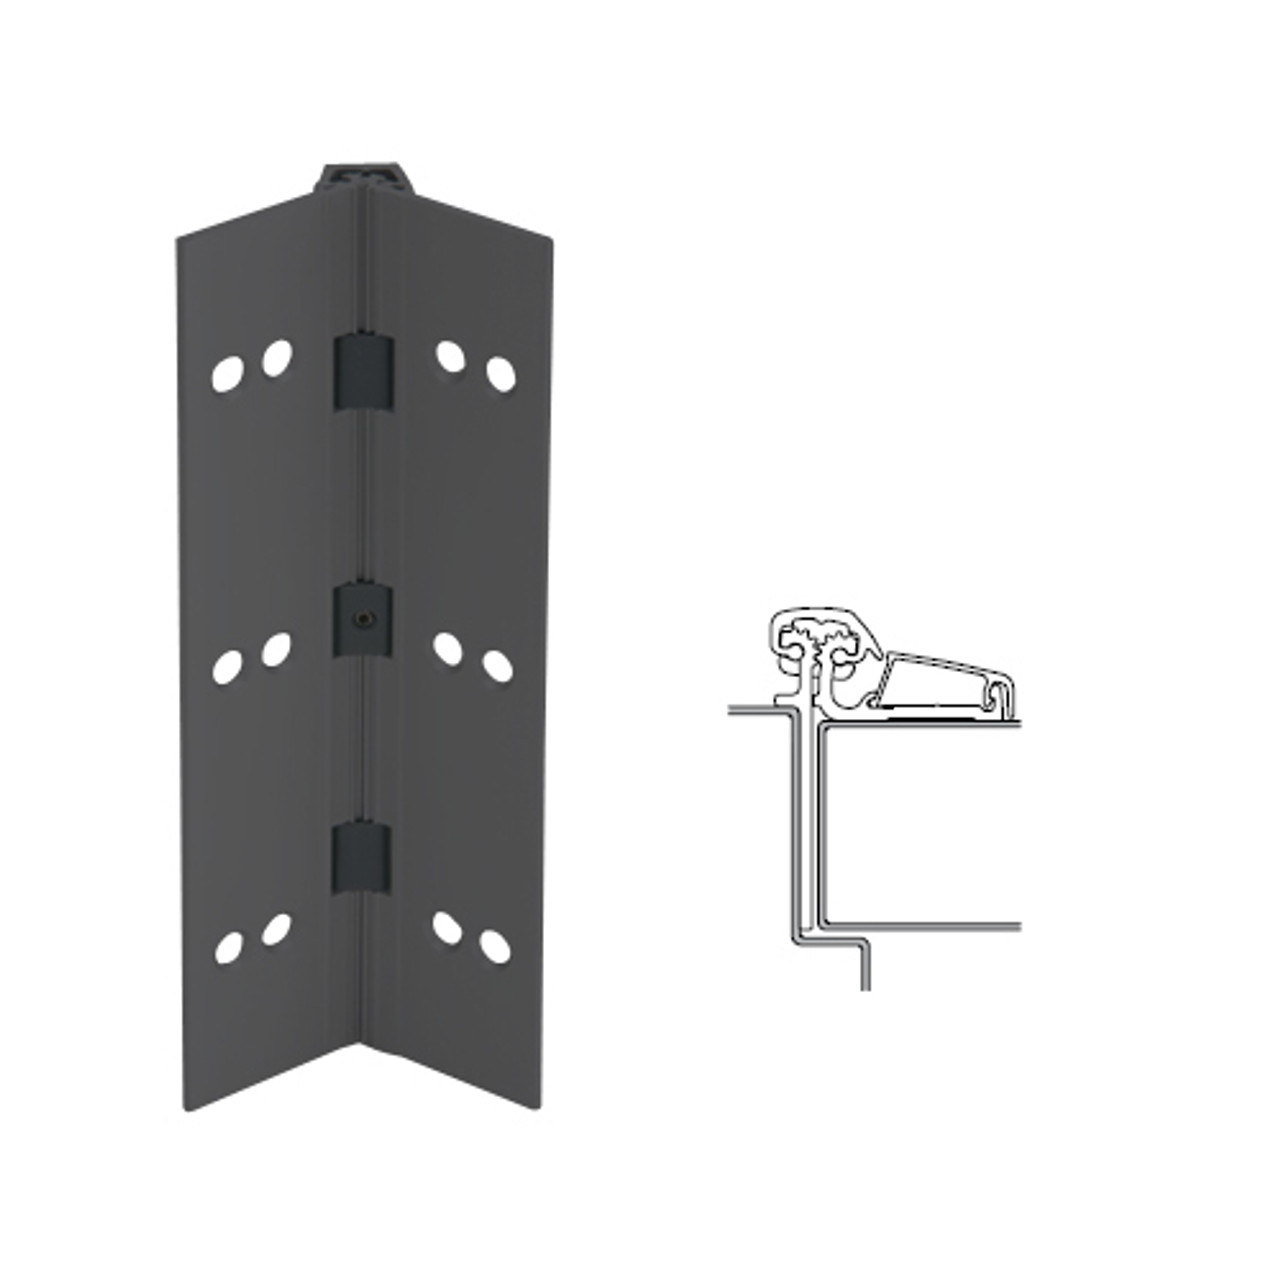 054XY-315AN-95-TFWD IVES Adjustable Half Surface Continuous Geared Hinges with Thread Forming Screws in Anodized Black